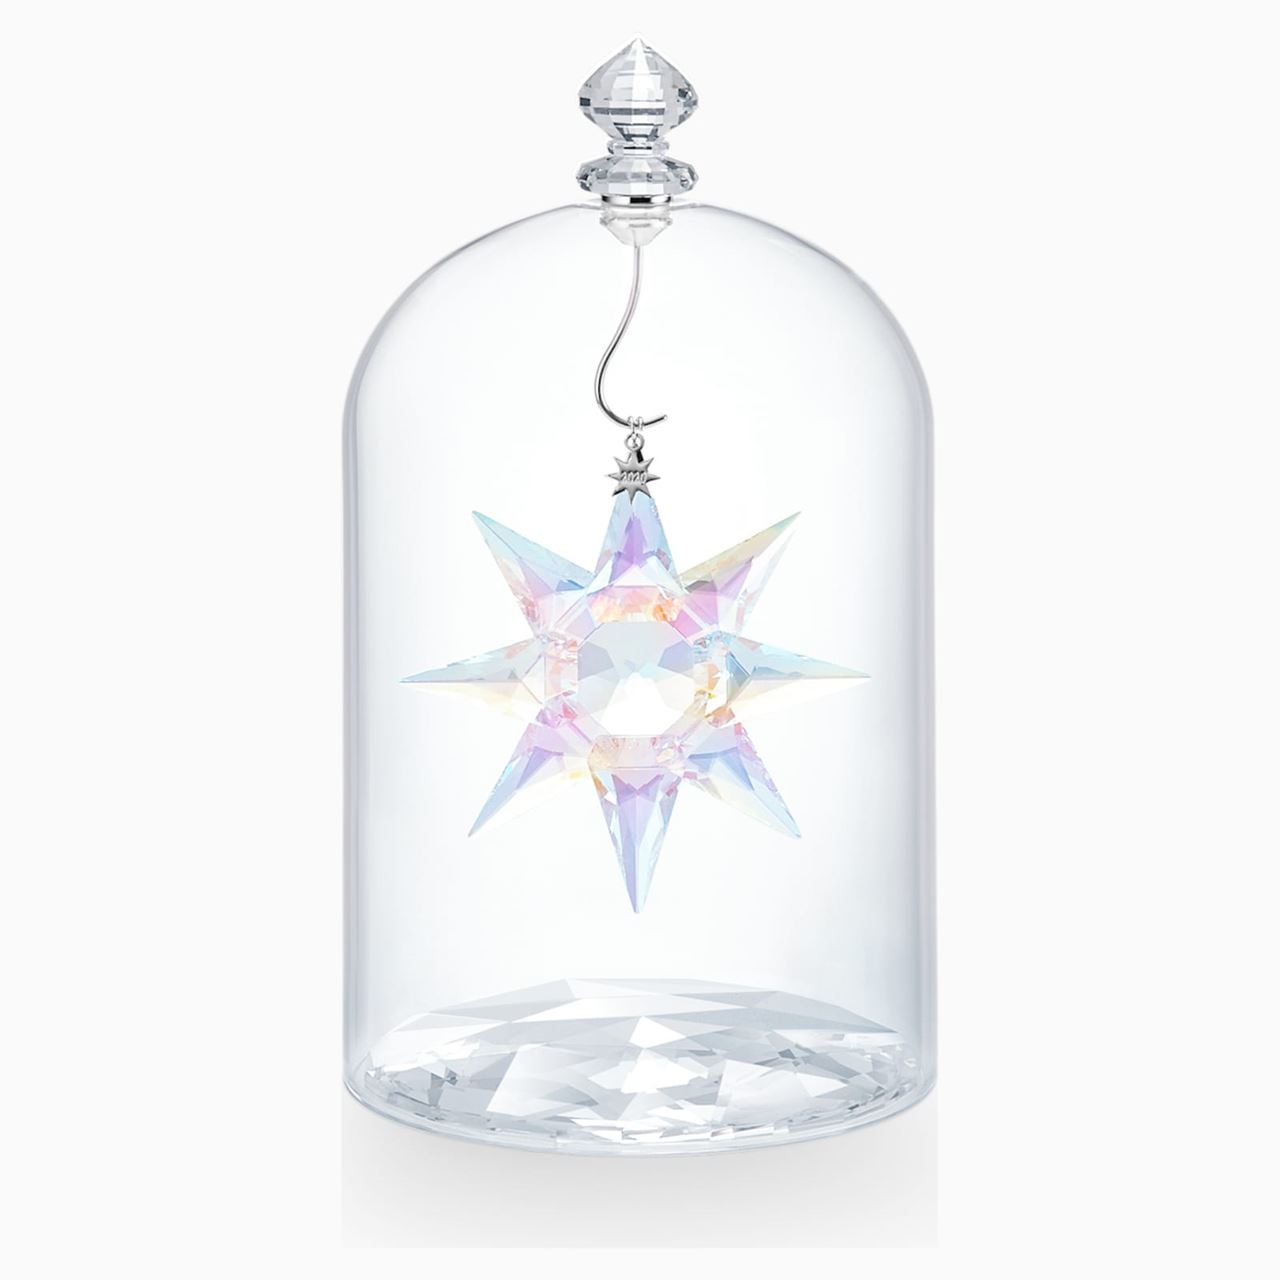 Anniversary Ornament Set, Annual Edition 2020 by Swarovski